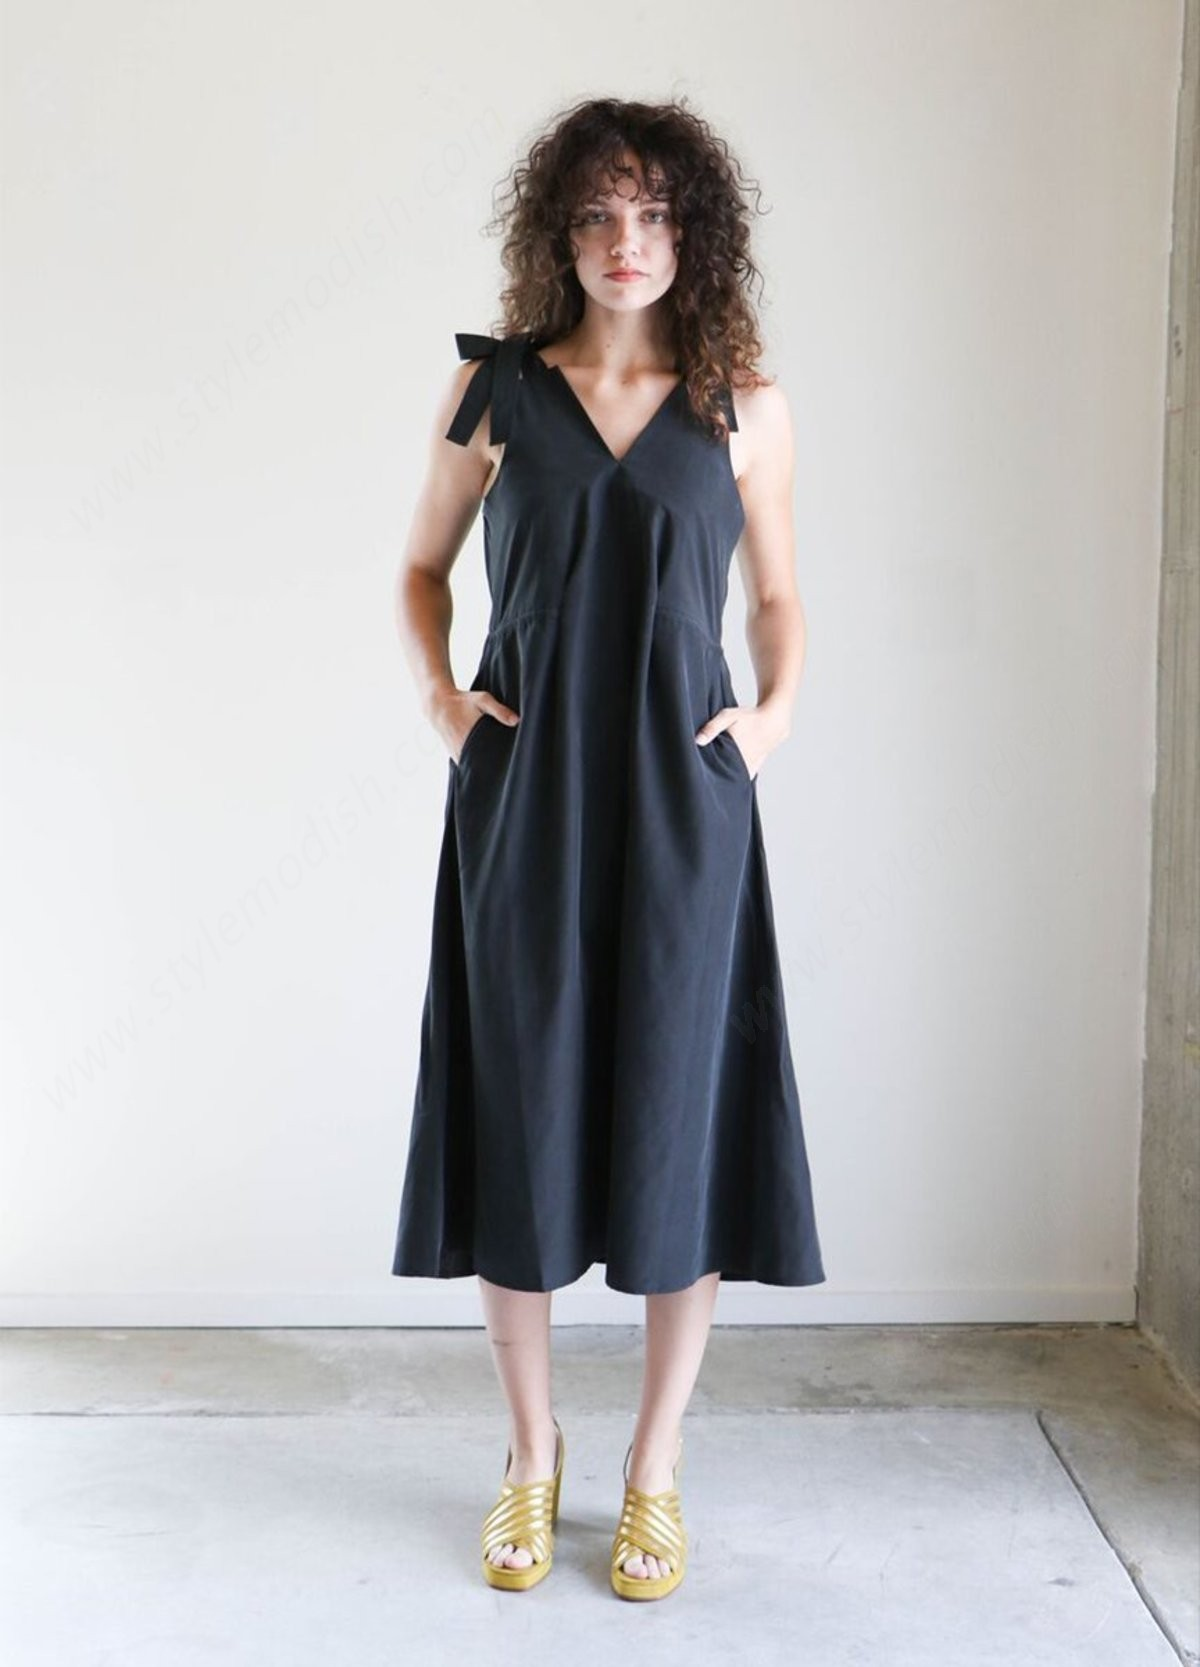 Woman's Shaina Mote Palo Dress In Onyx - Woman's Shaina Mote Palo Dress In Onyx